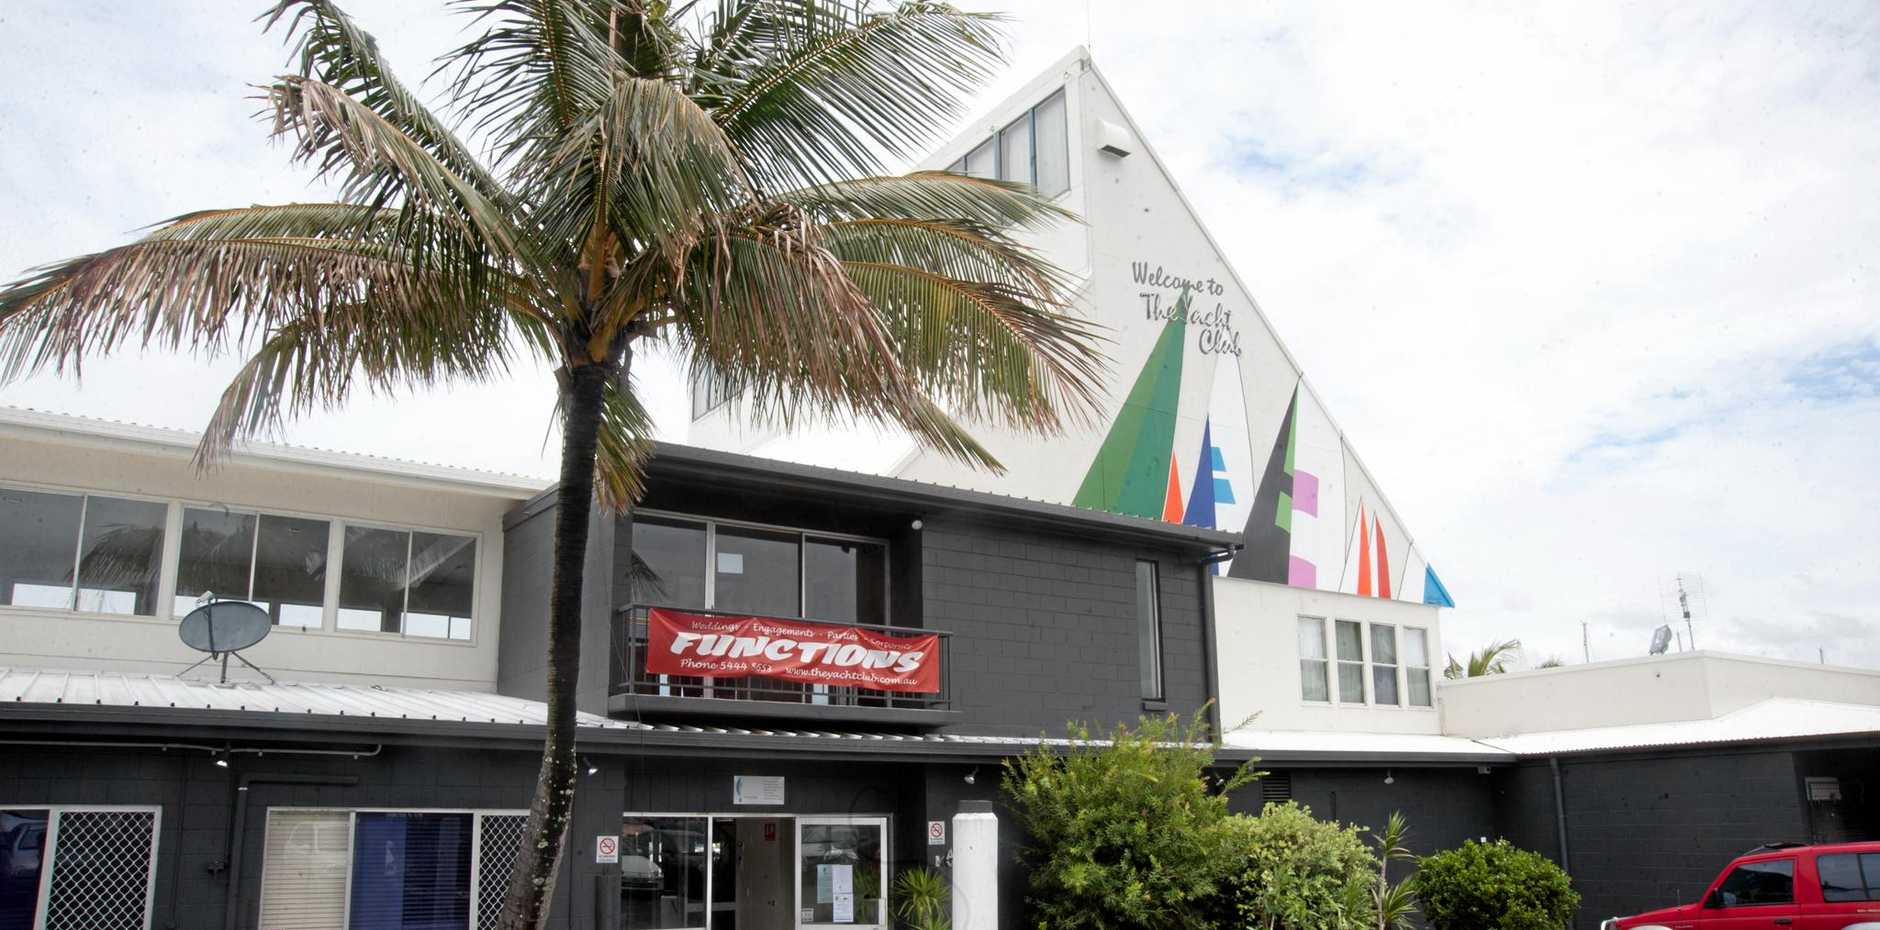 FOR SALE: The Yacht Club restaurant at Mooloolaba.